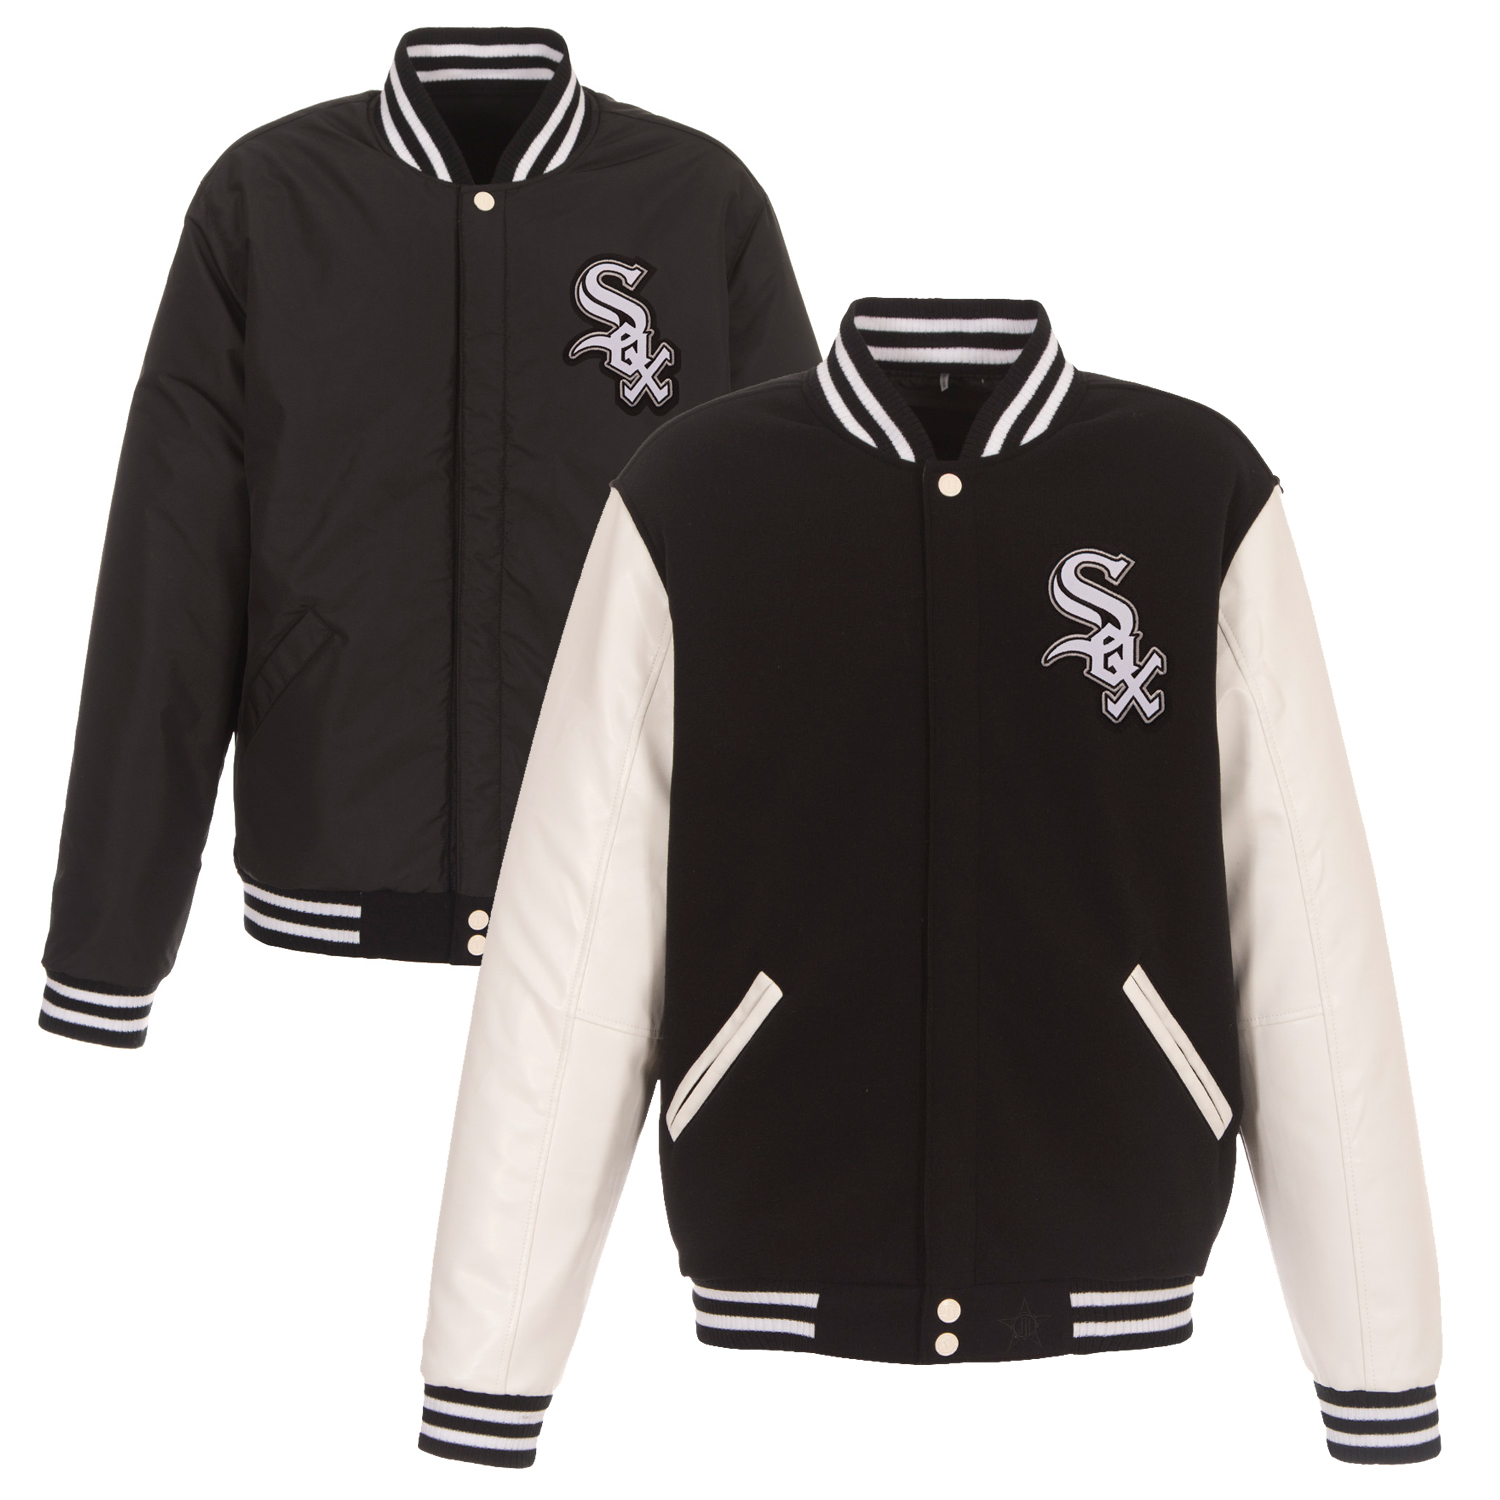 Chicago White Sox JH Design Alternate Reversible Fleece Jacket with Faux Leather Sleeves - Black